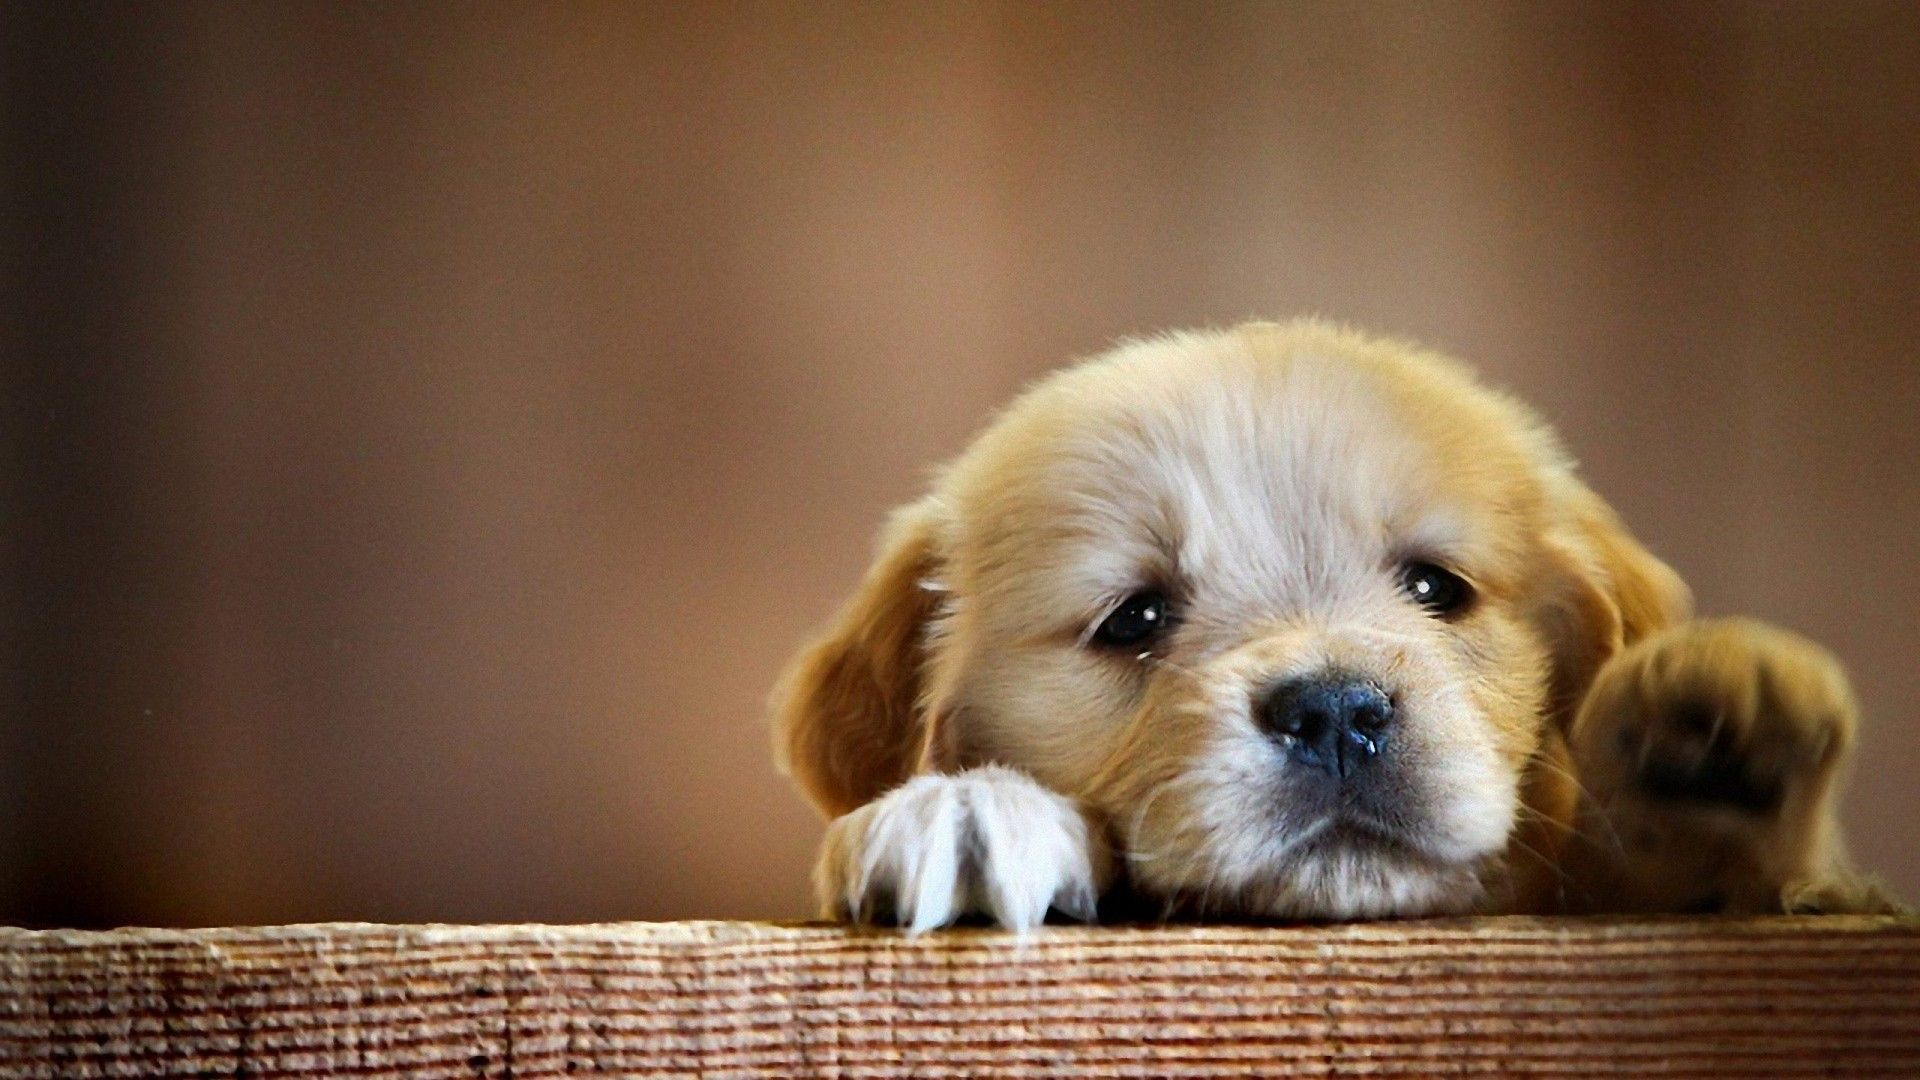 New Puppy wallpaper and Newbie site